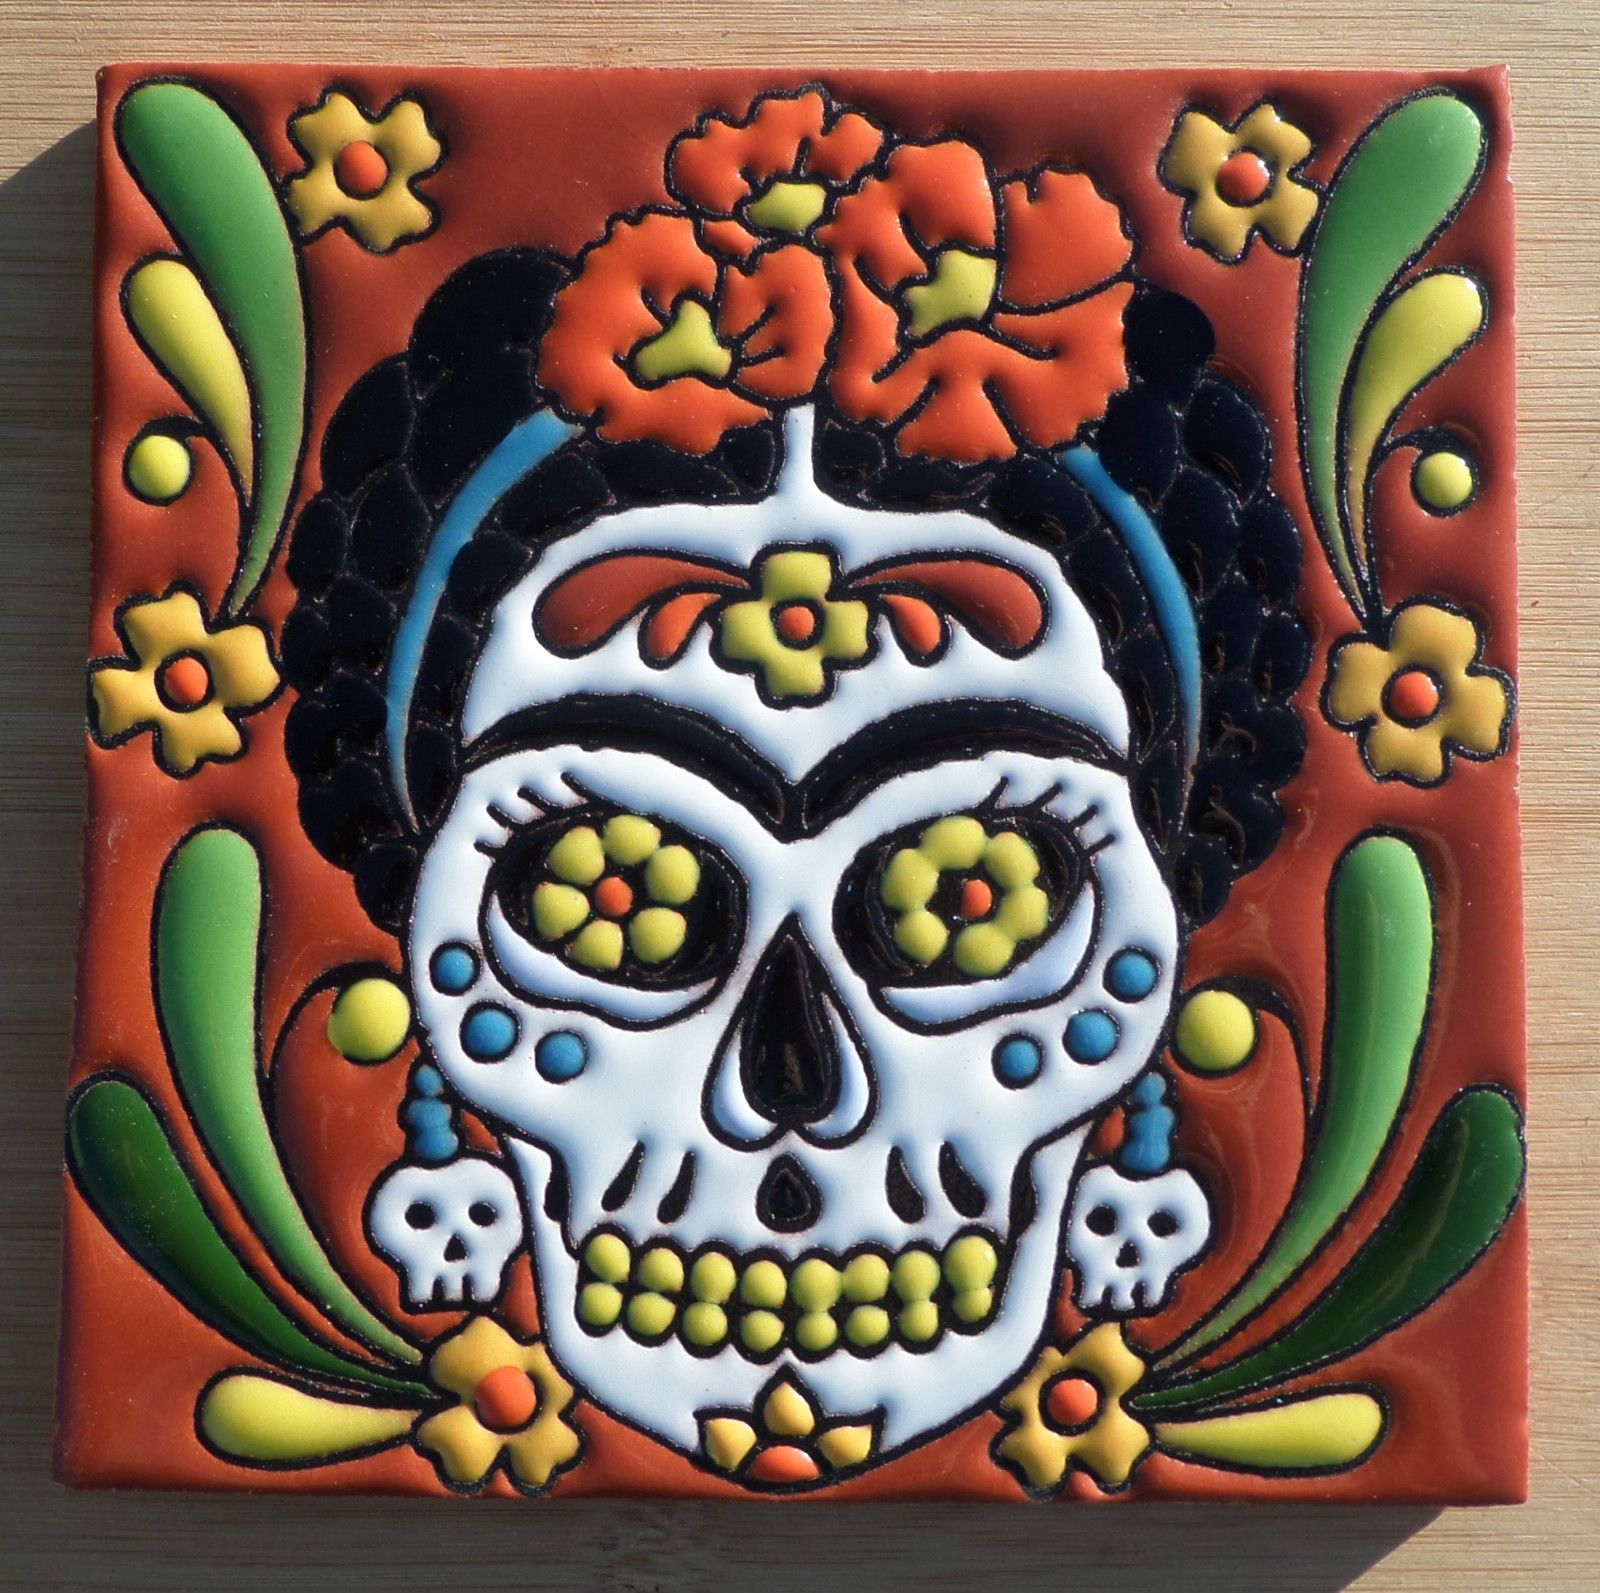 Talavera mexican tile 6 day of the dead high relief frida kahlo talavera mexican tile 6 day of the dead high relief frida kahlo dailygadgetfo Choice Image